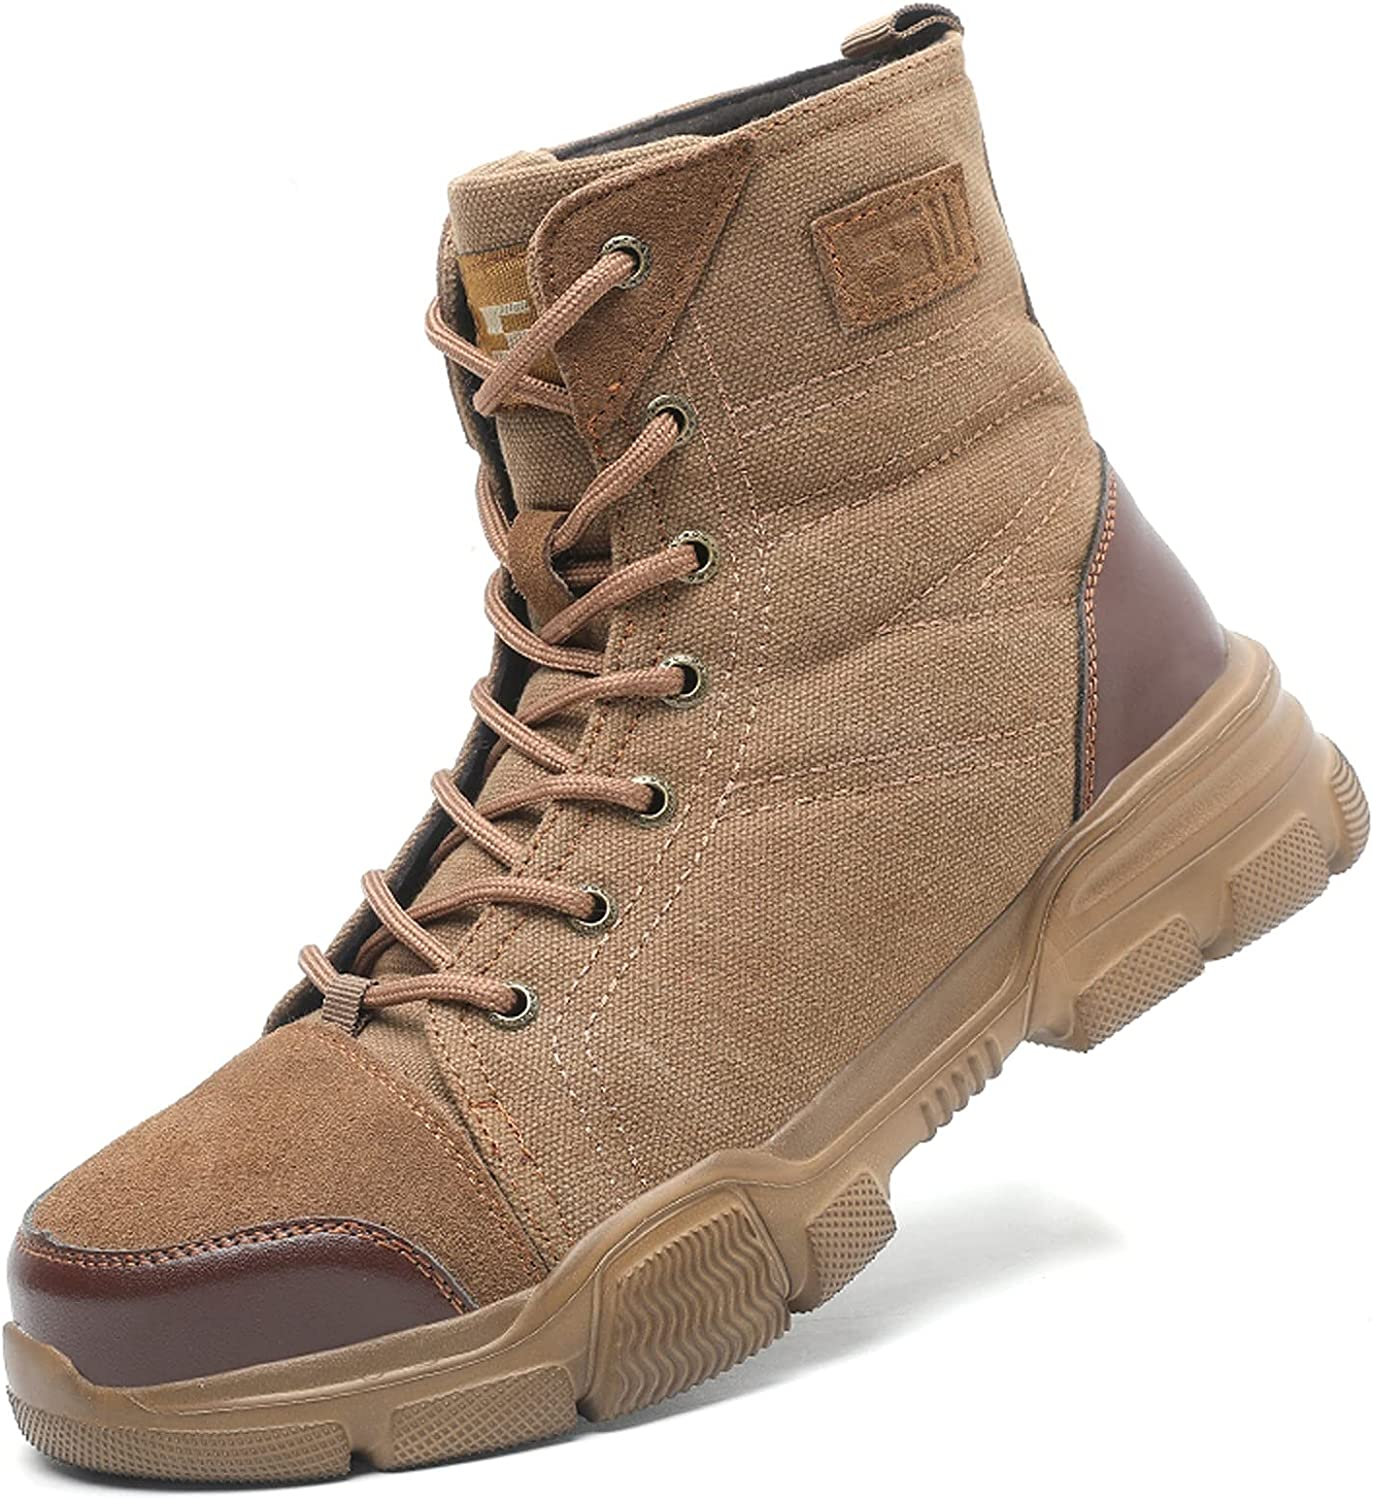 Military Tactical Work Boot for Men toe Boots Max 81% OFF trust Desert Steel H